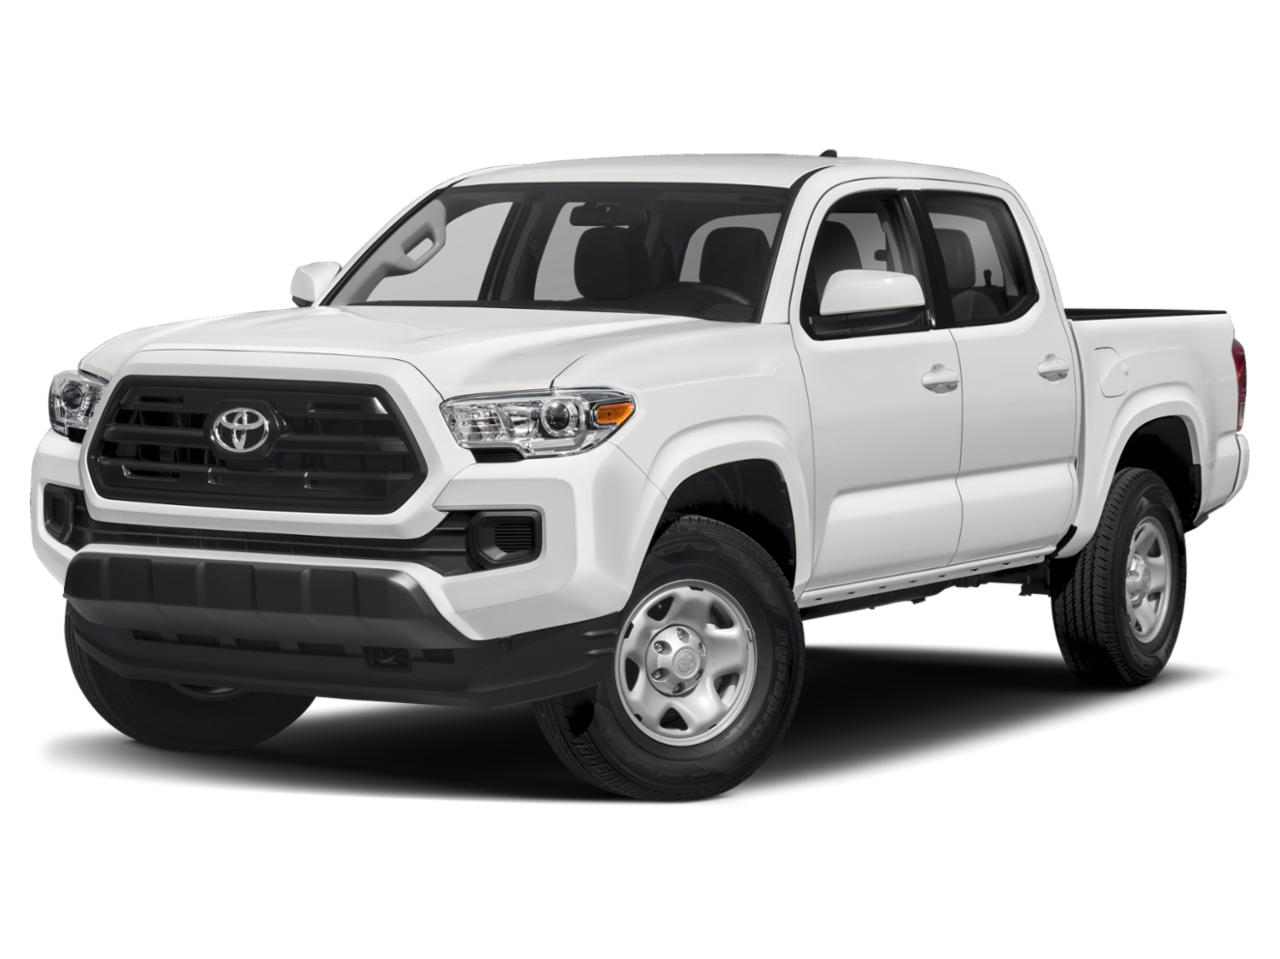 2018 Toyota Tacoma Vehicle Photo in OKLAHOMA CITY, OK 73131